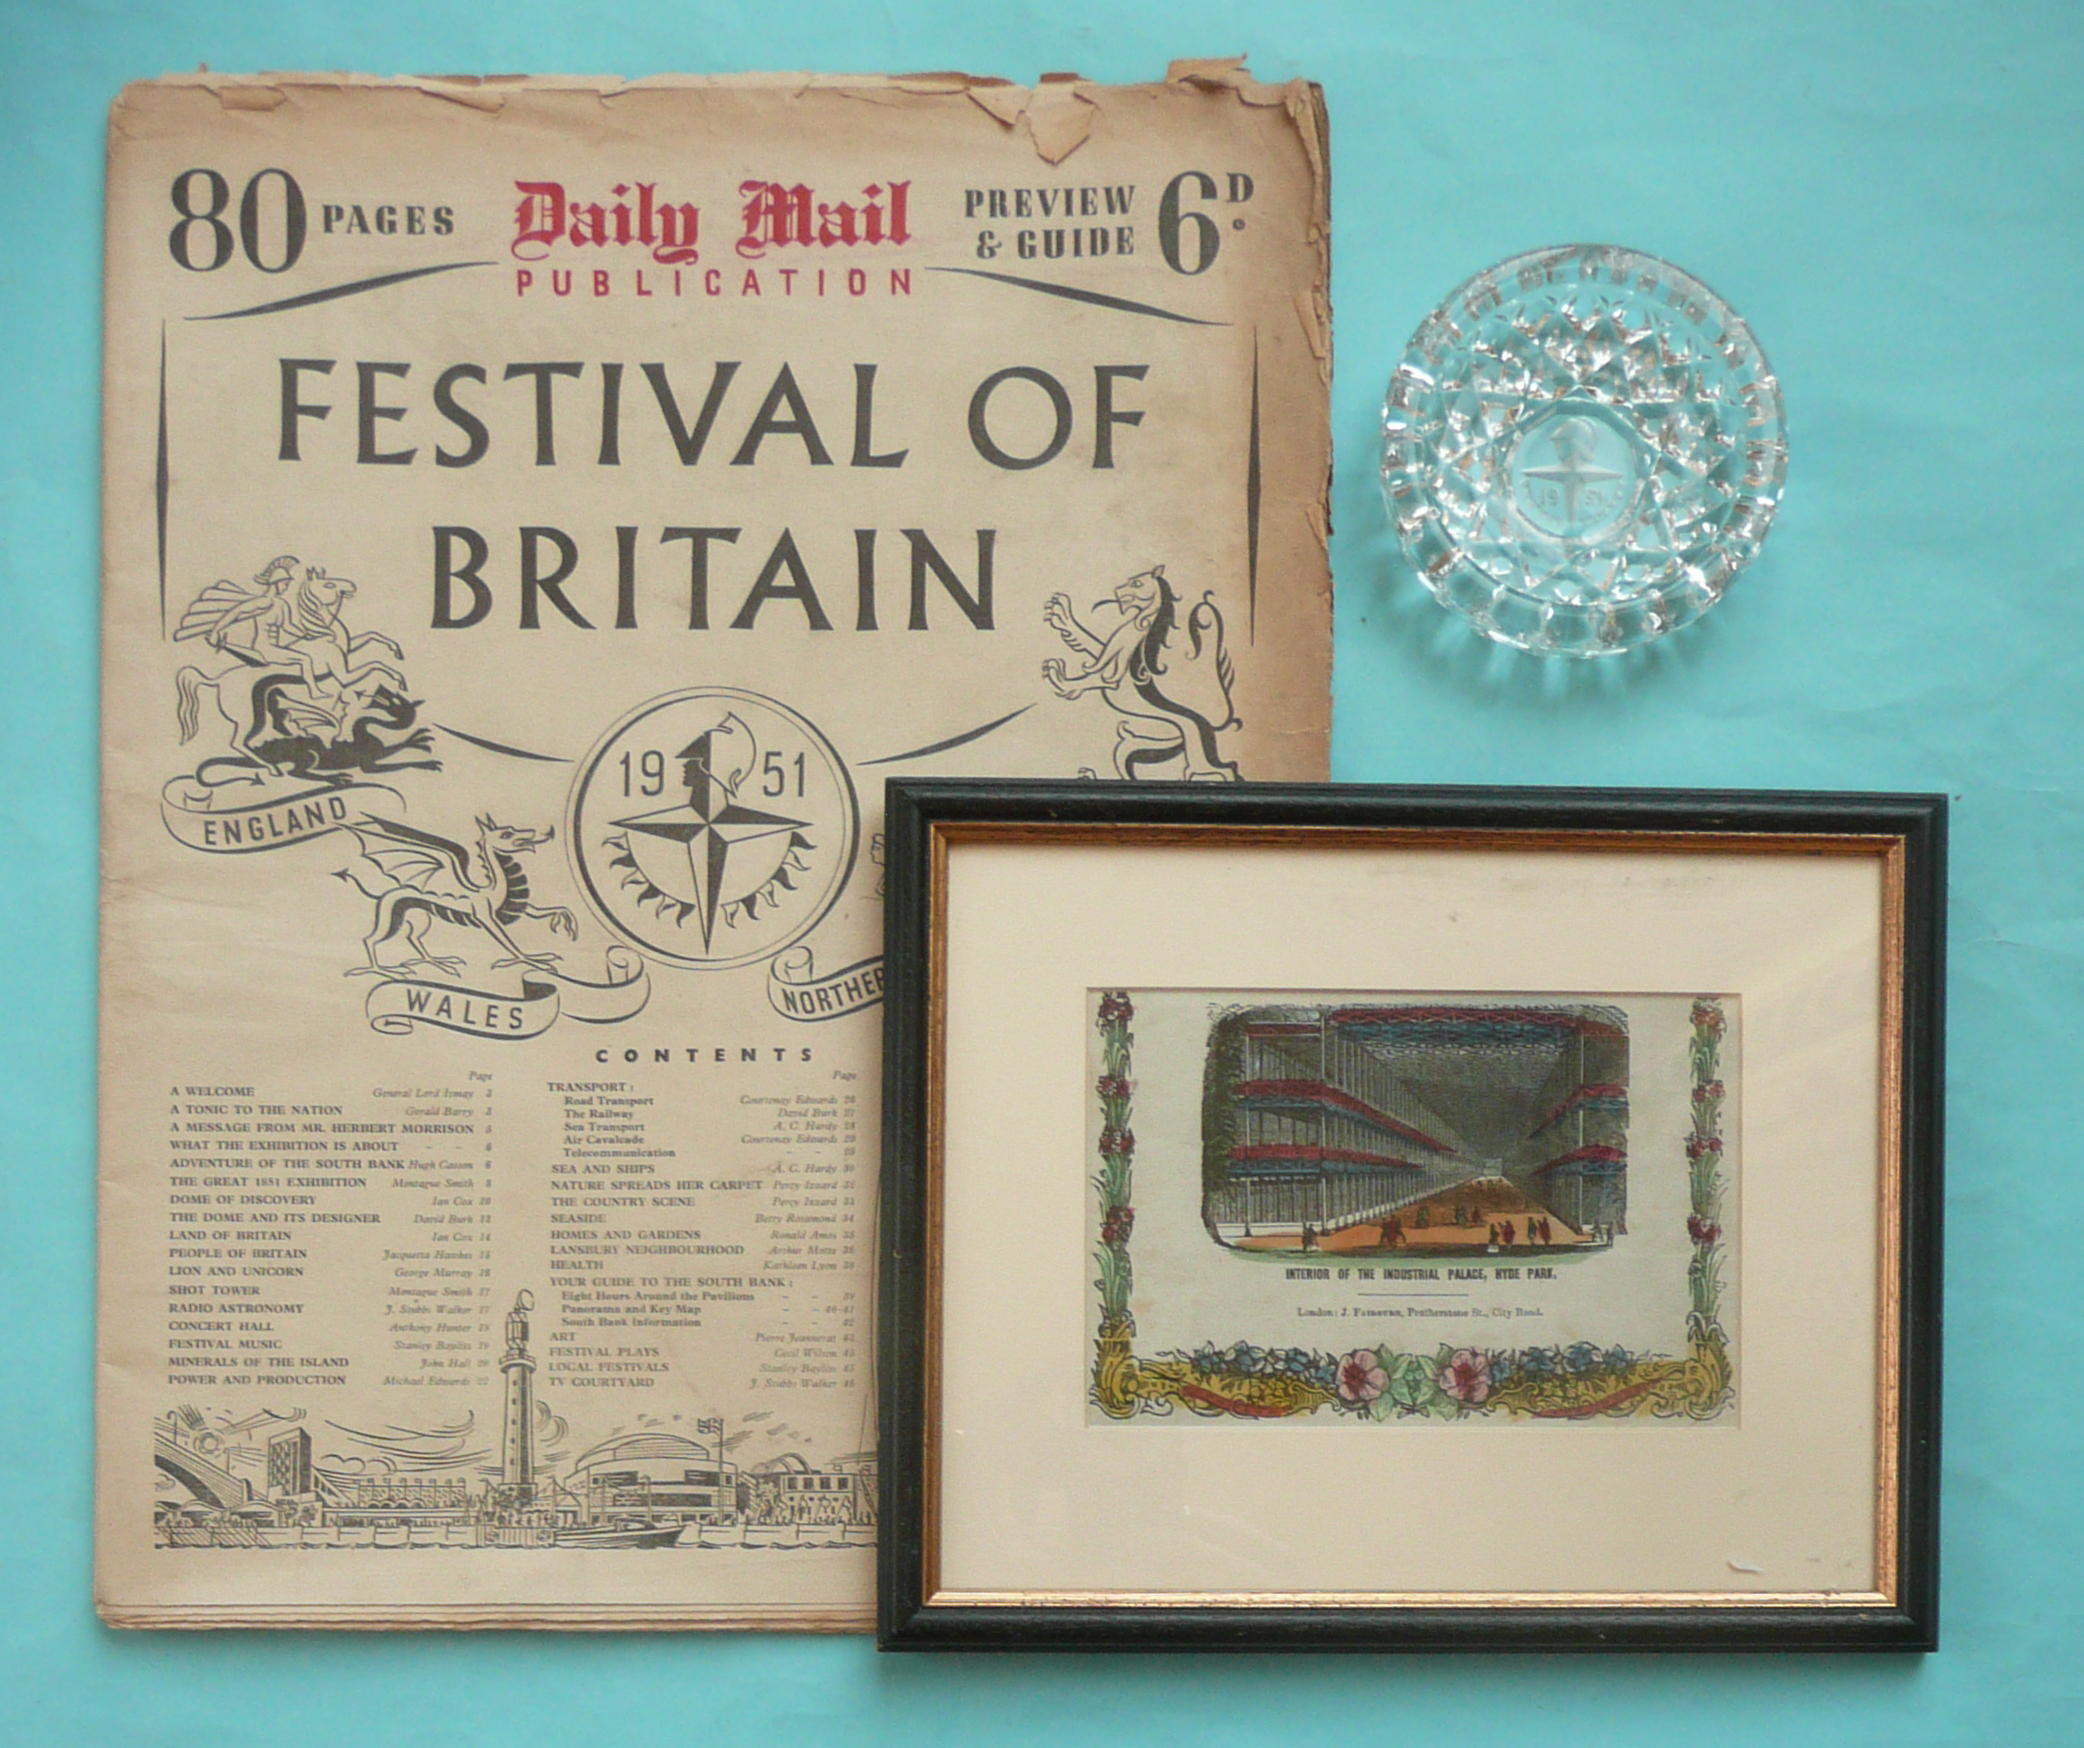 Lot 24 - A moulded glass ashtray, 100mm, a copy of the Daily Mail guide both for 1951 Festival of Britain and